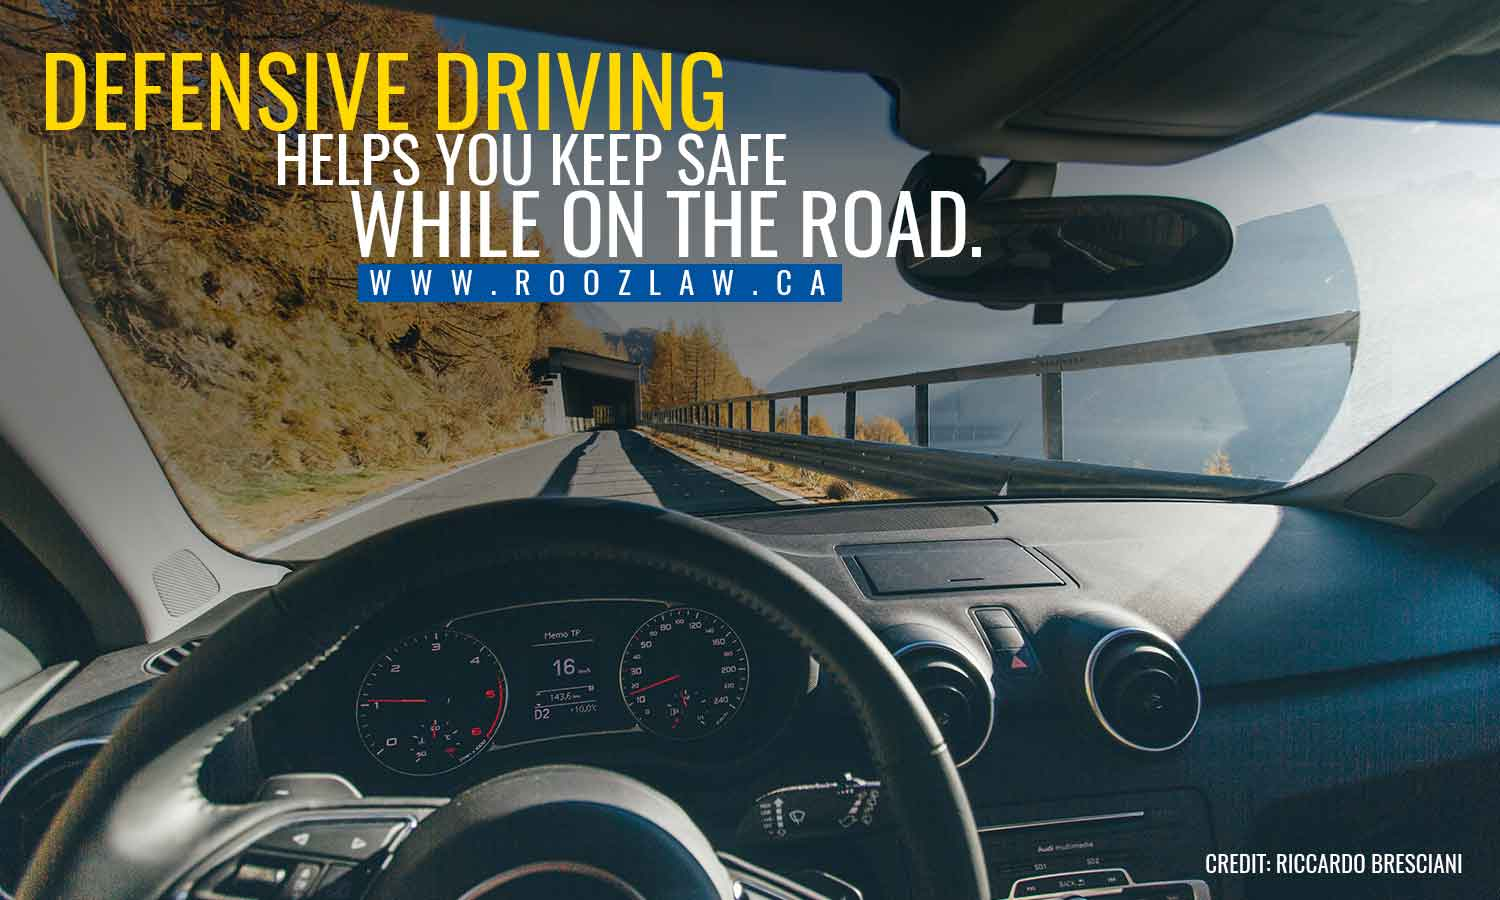 Defensive driving helps you keep safe while on the road